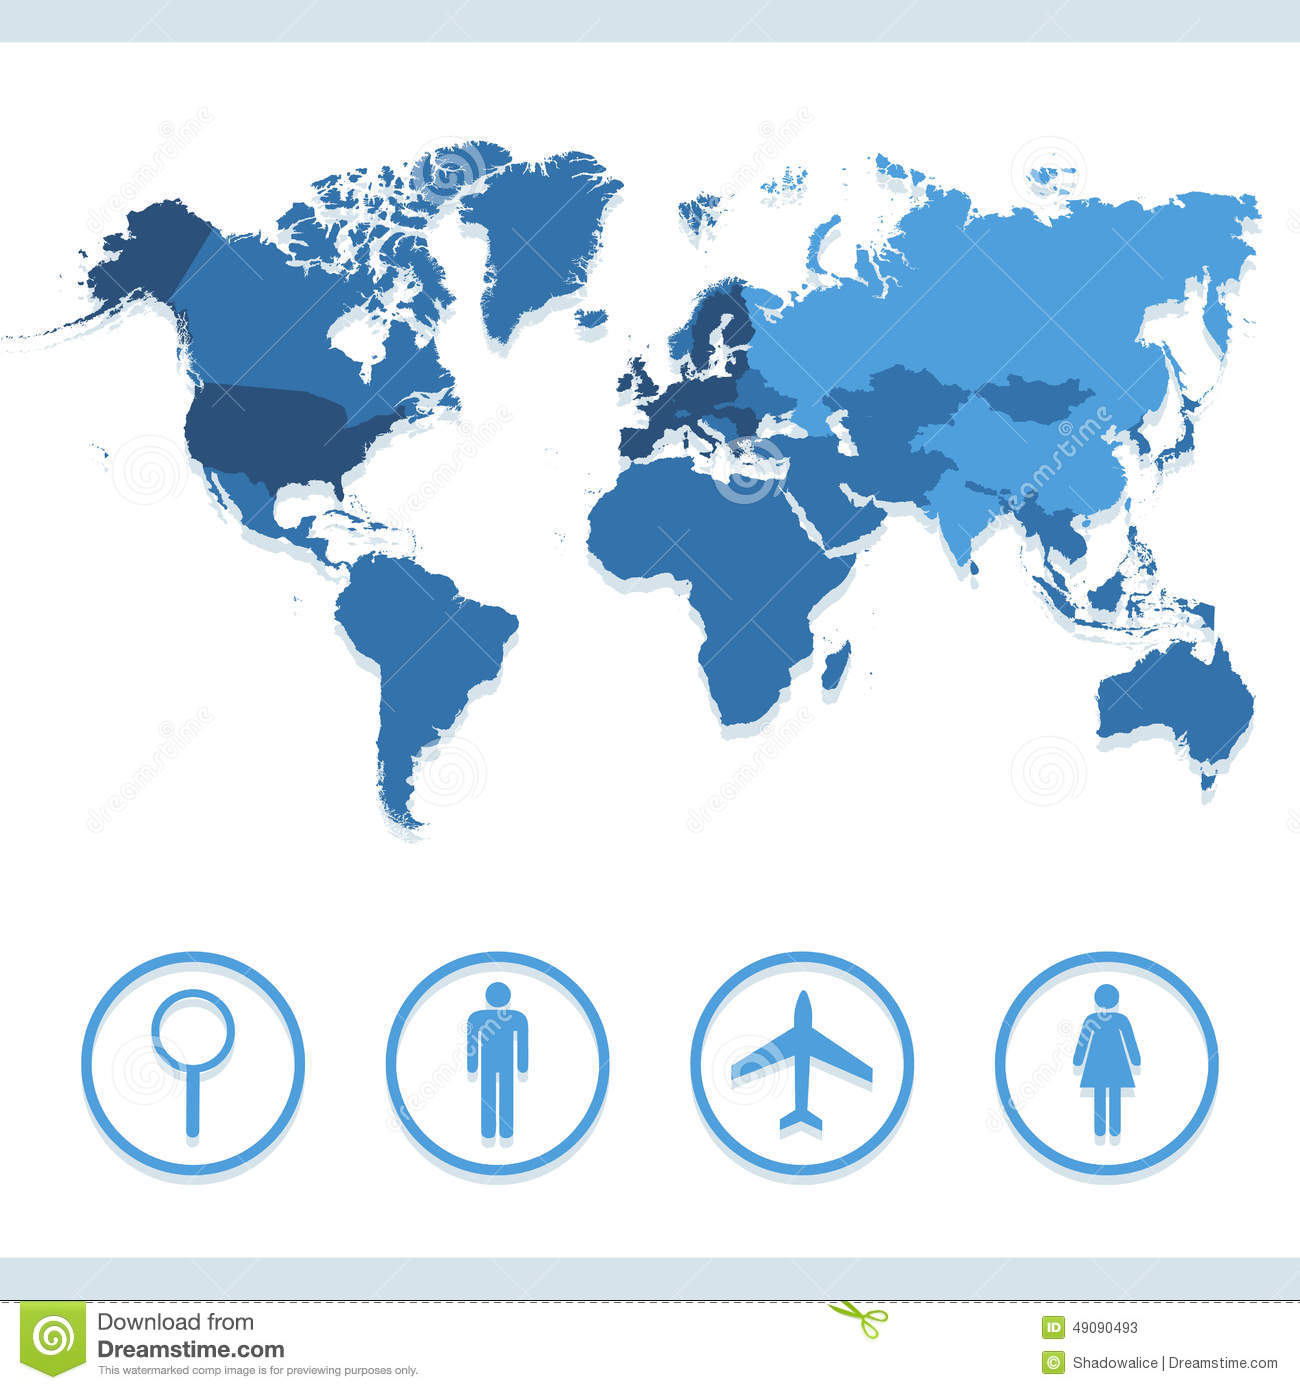 database diagram icon world map icons set great for any use. vector eps10 ... world diagram icon